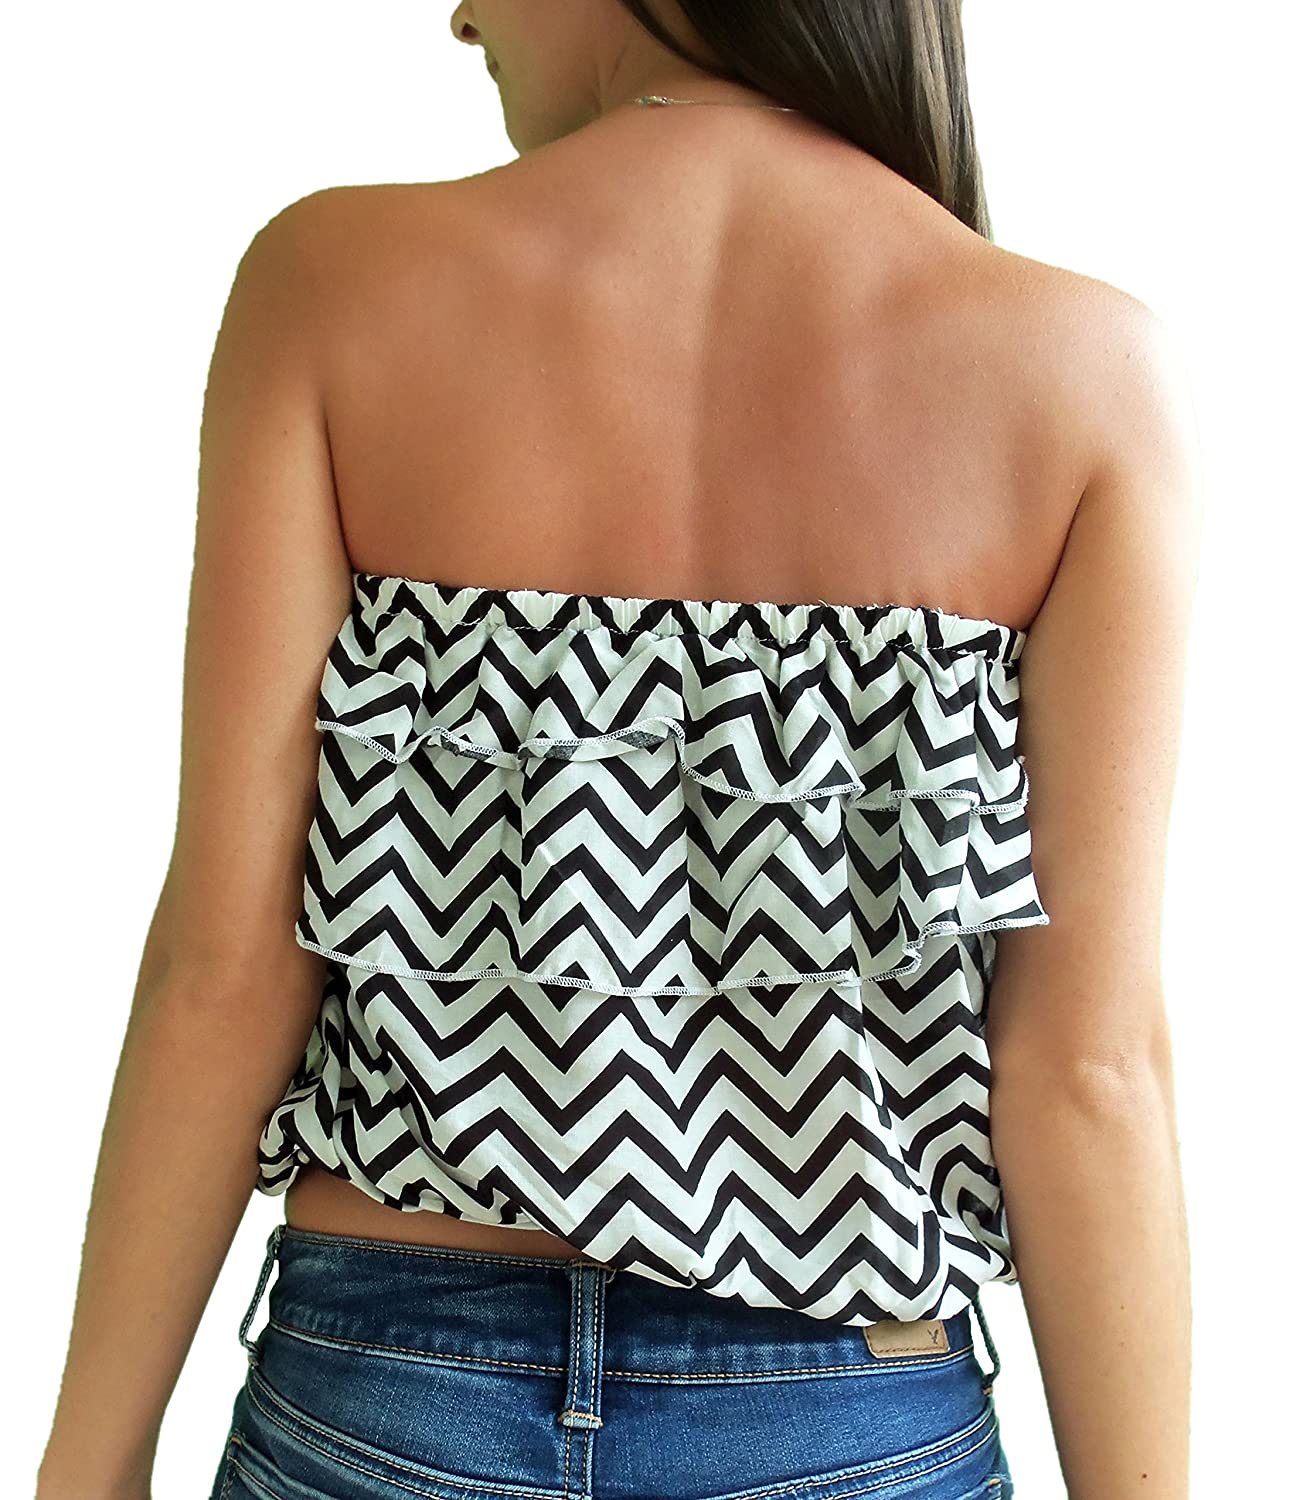 c97715b6e7d07 Wishful Park Junior s Peasant Style Crop Halter Top at Amazon Women s  Clothing store